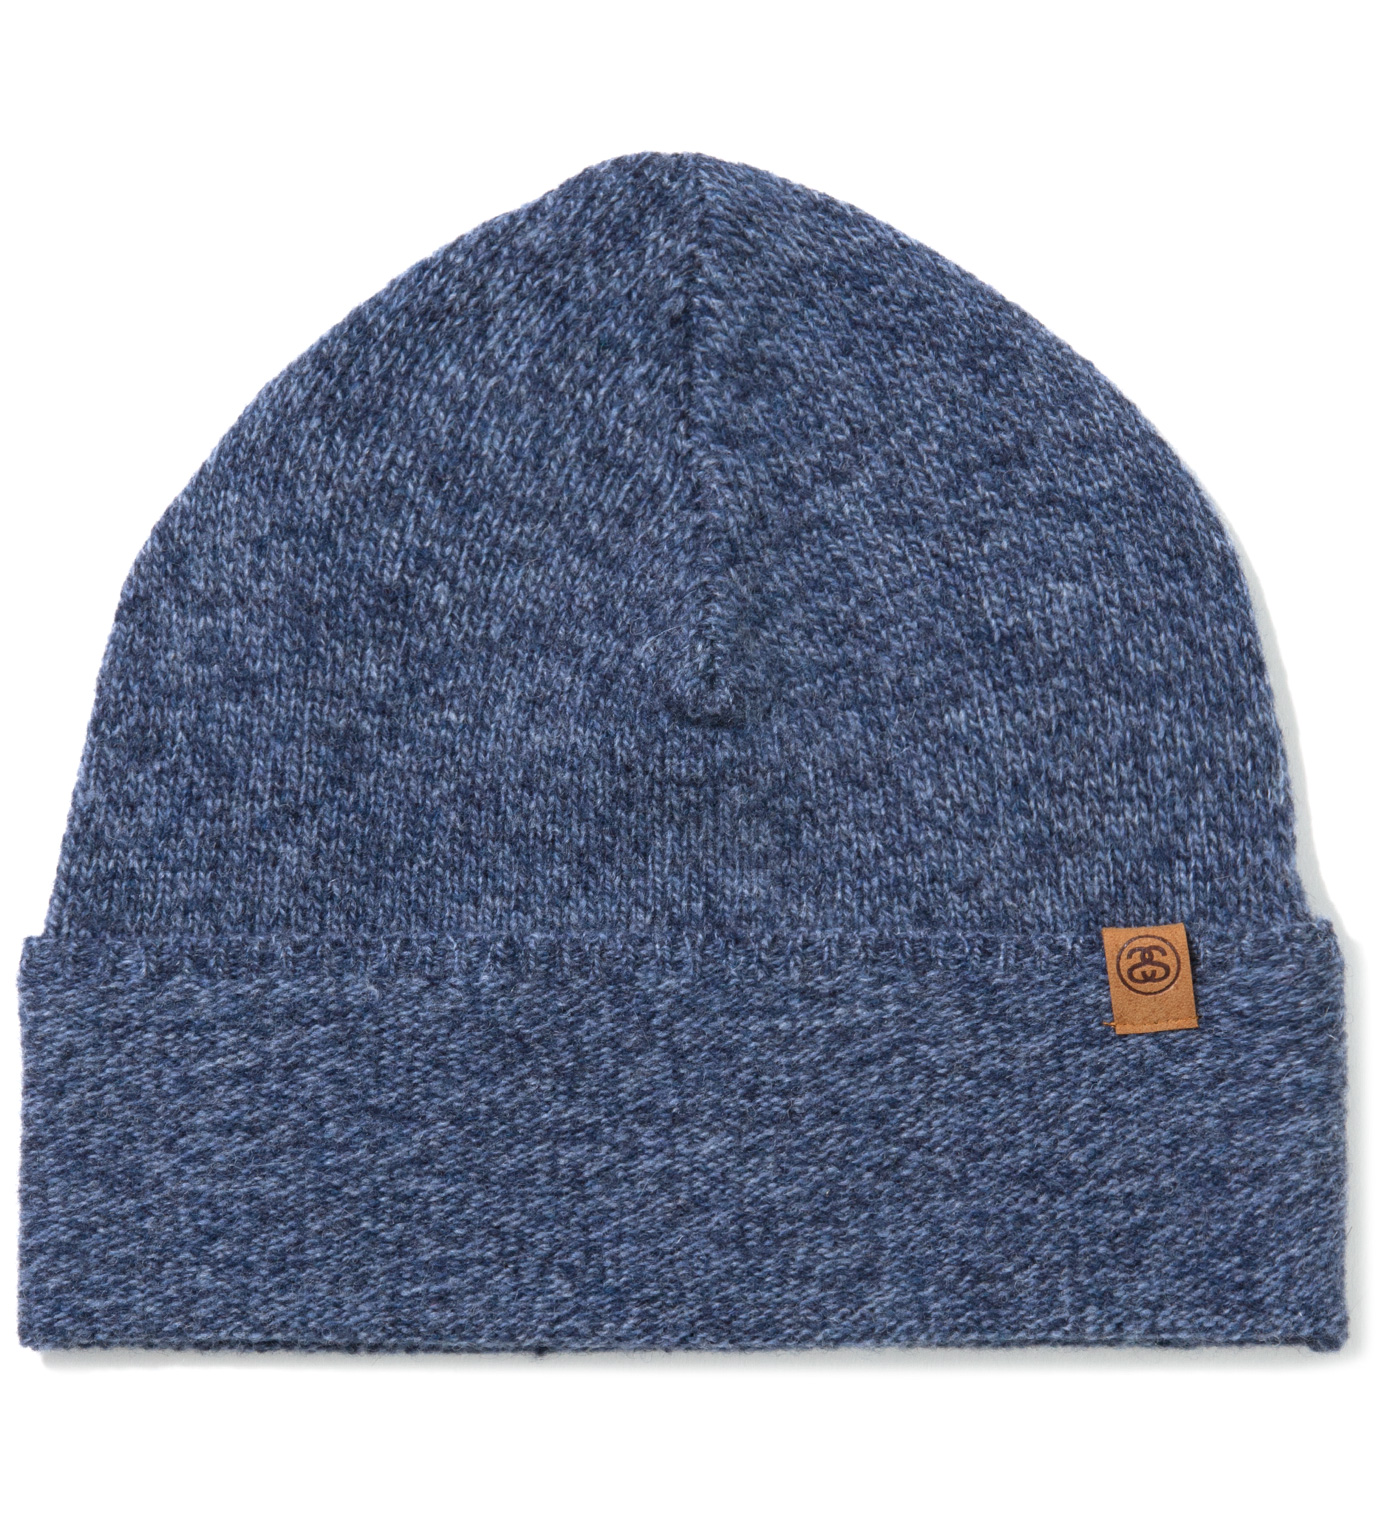 Stussy Navy Summit Cuff Beanie